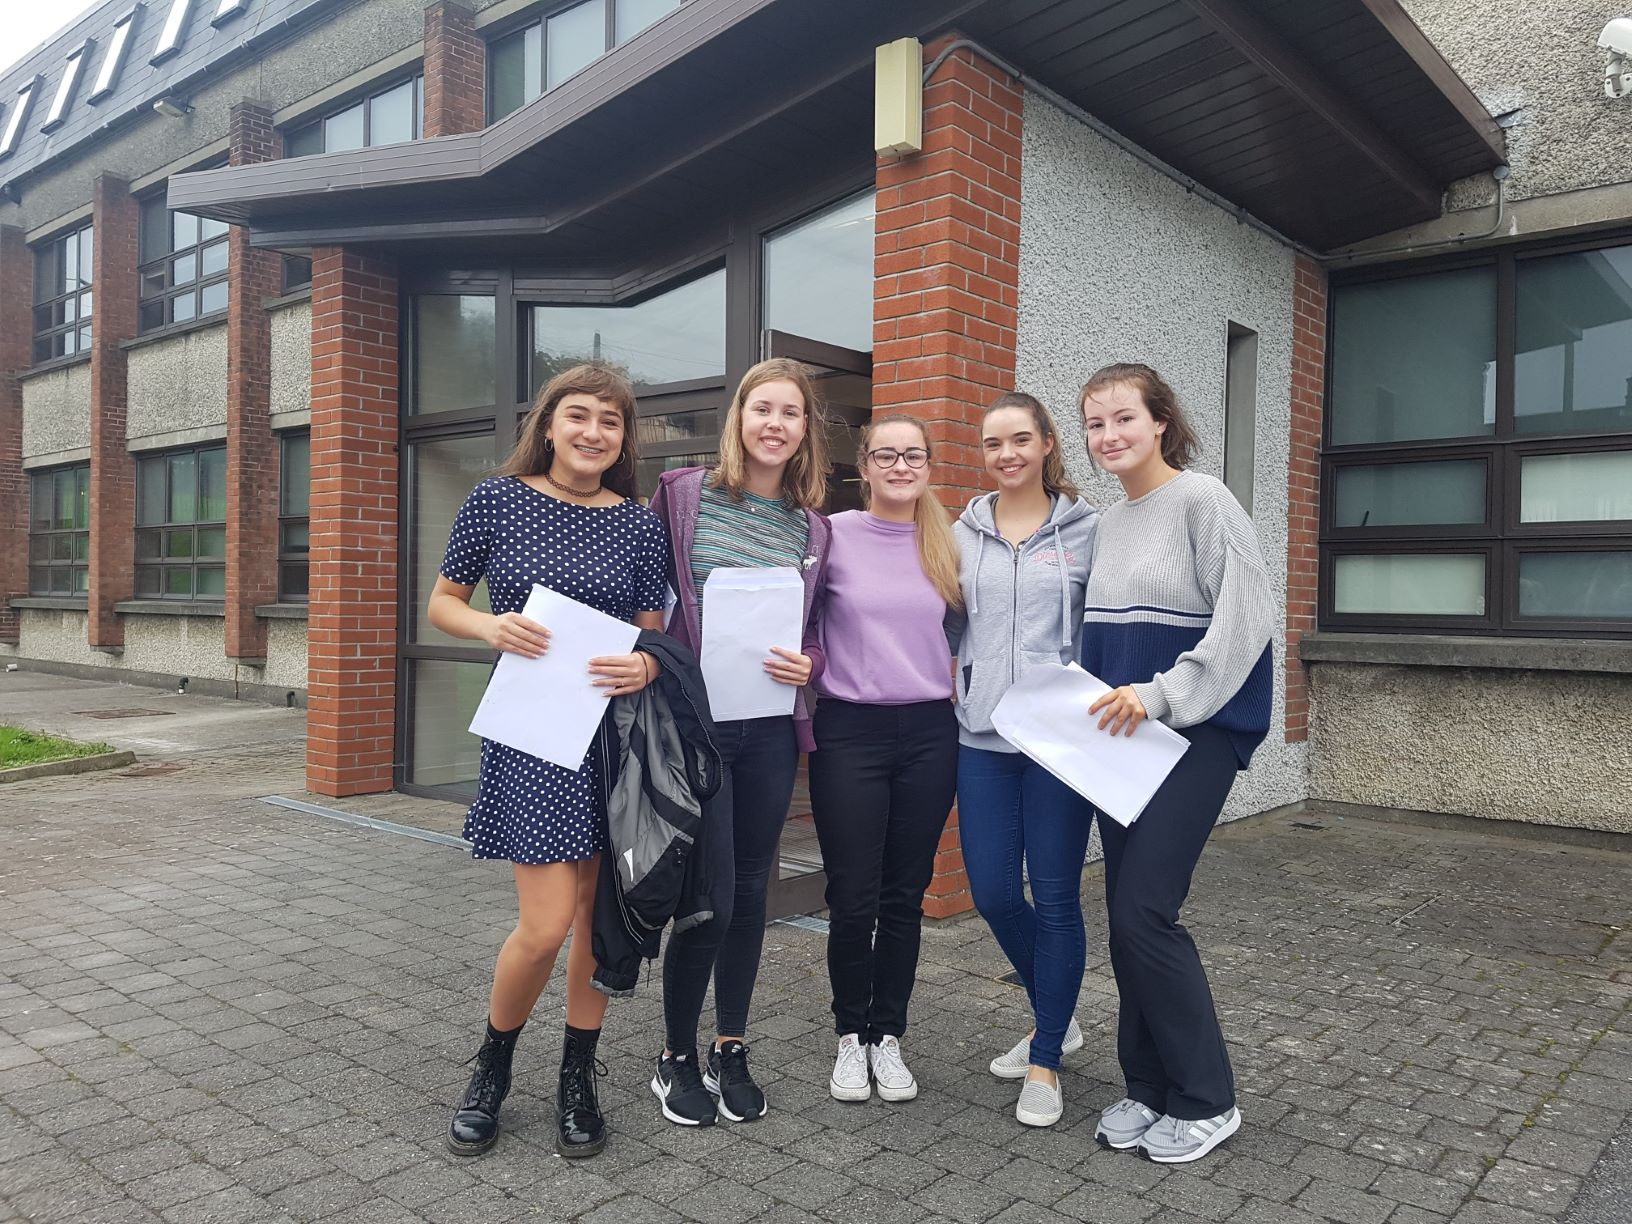 1500 students are getting their Leaving Cert results today.